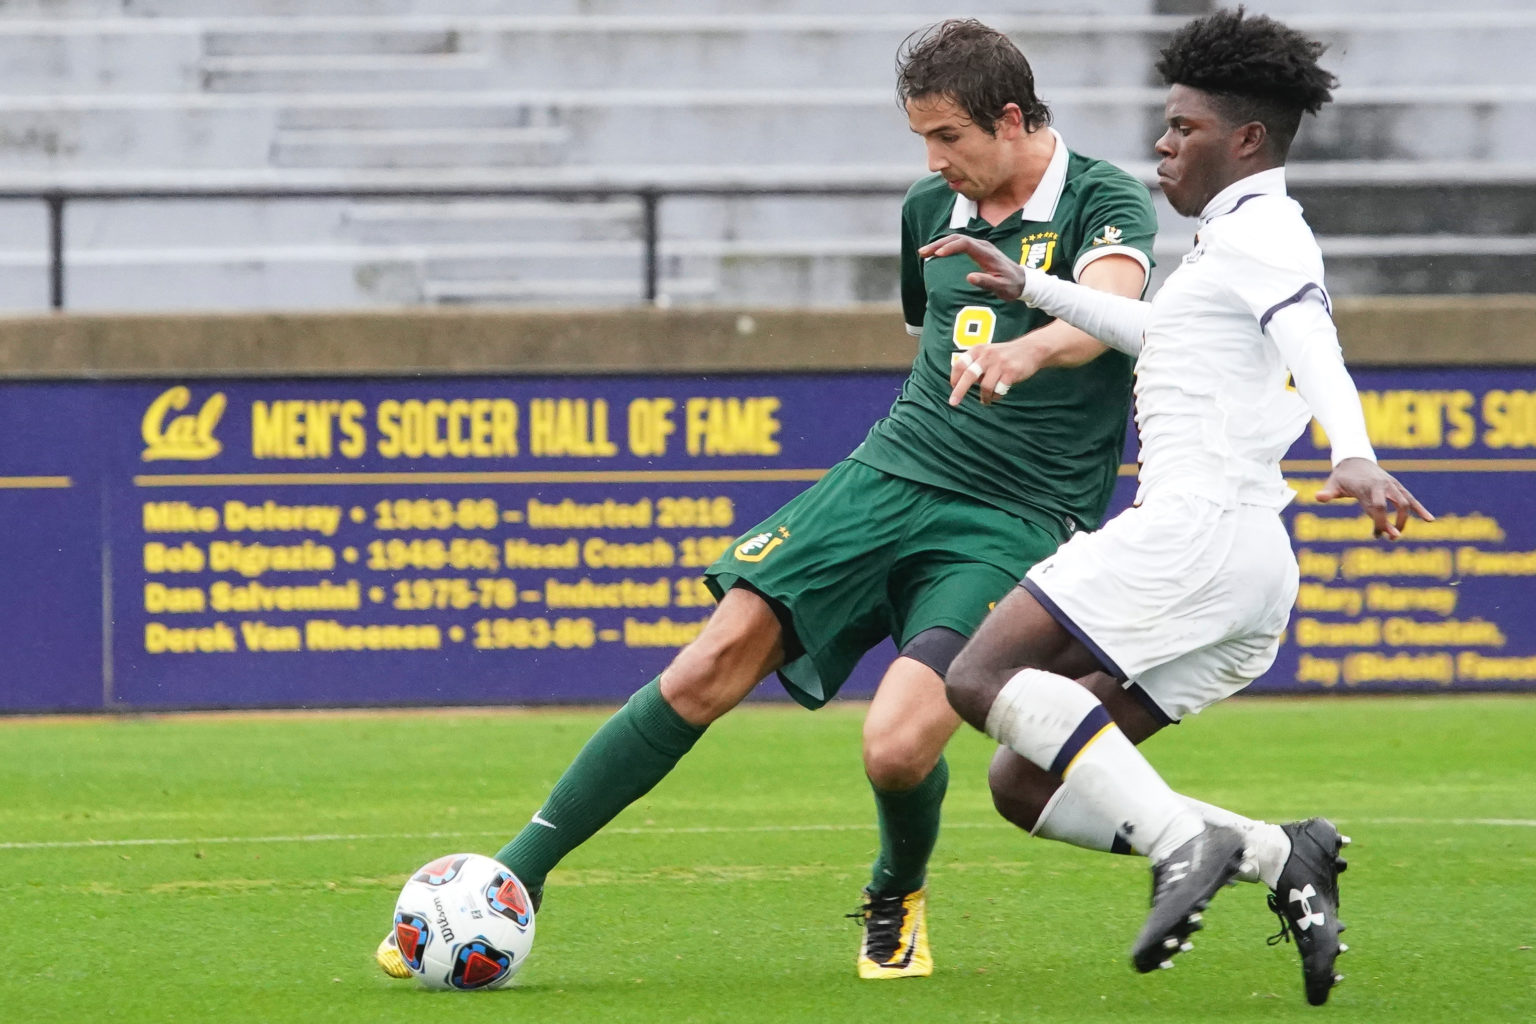 Sean Bowman of the University of San Francisco men's soccer team. (Courtesy Chris M. Leung/USF Dons Athletics)